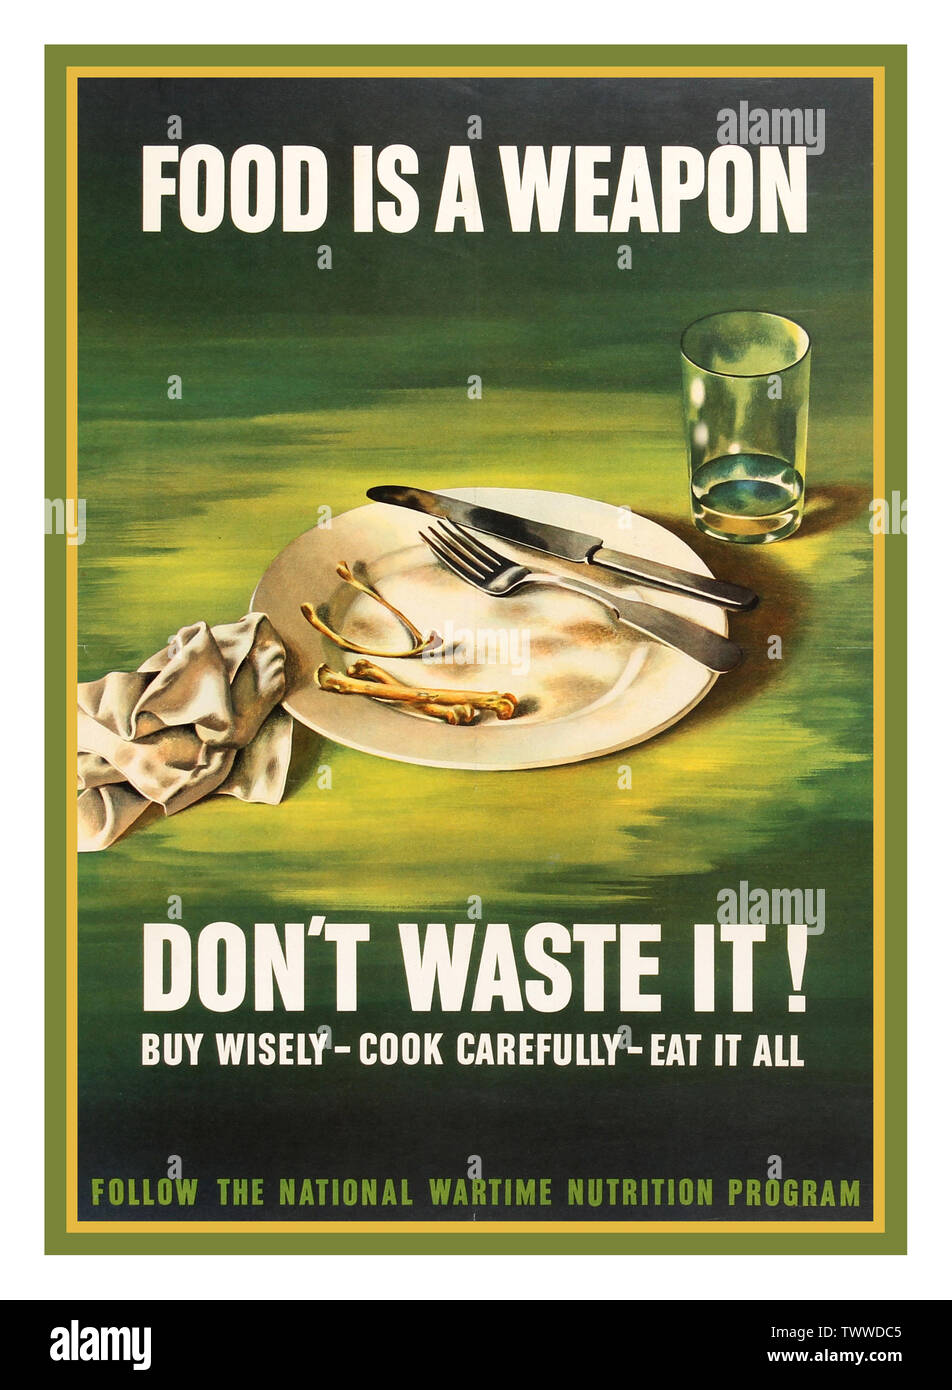 Vintage WW2 1943 American propaganda poster 'Food is a Weapon - Don't Waste It! Buy Wisely - Cook Carefully - Eat it All' - Follow the National Wartime Nutrition Programme. Illustration of an empty glass and two bones on an empty plate. USA - Stock Image